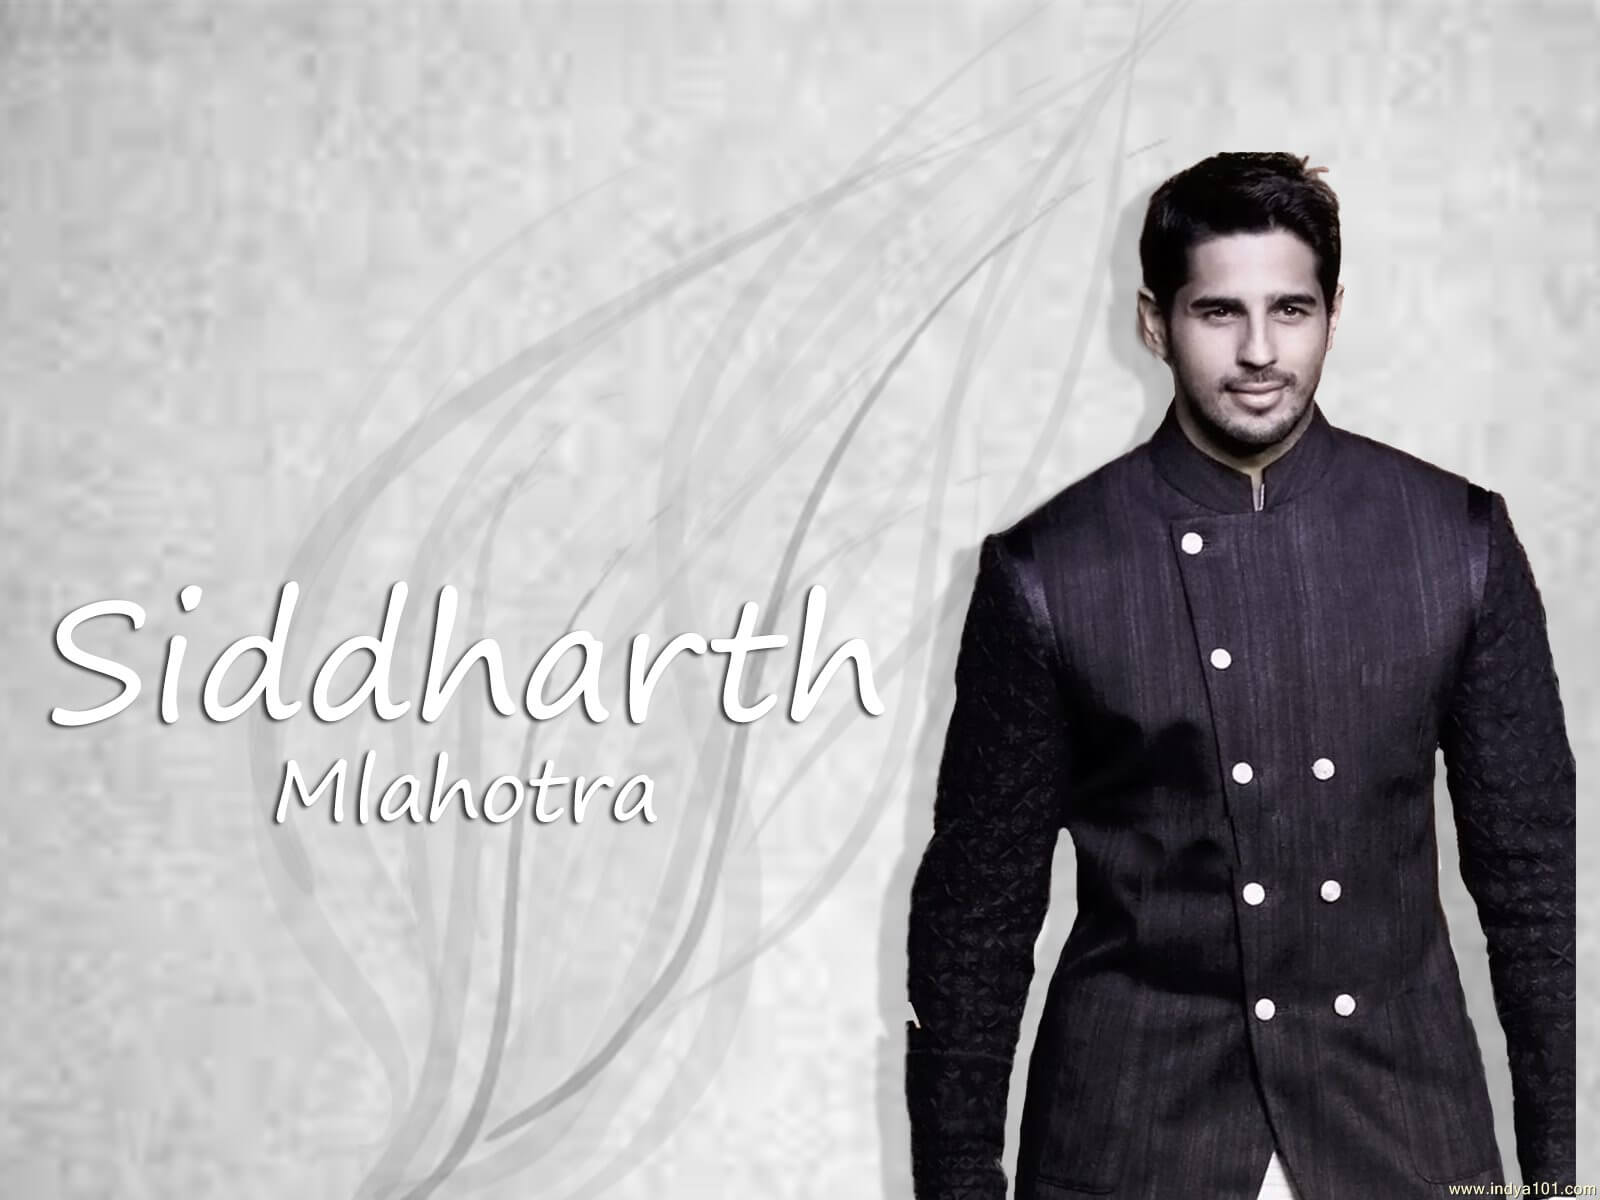 Sidharth Malhotra Movies, Height, Age, Photos, Birth Date, Biography, Girlfriend, Family, Hairstyle, Education, Details, Net Worth, Awards, Wiki, Instagram, Facebook, Imdb, Twitter (39)